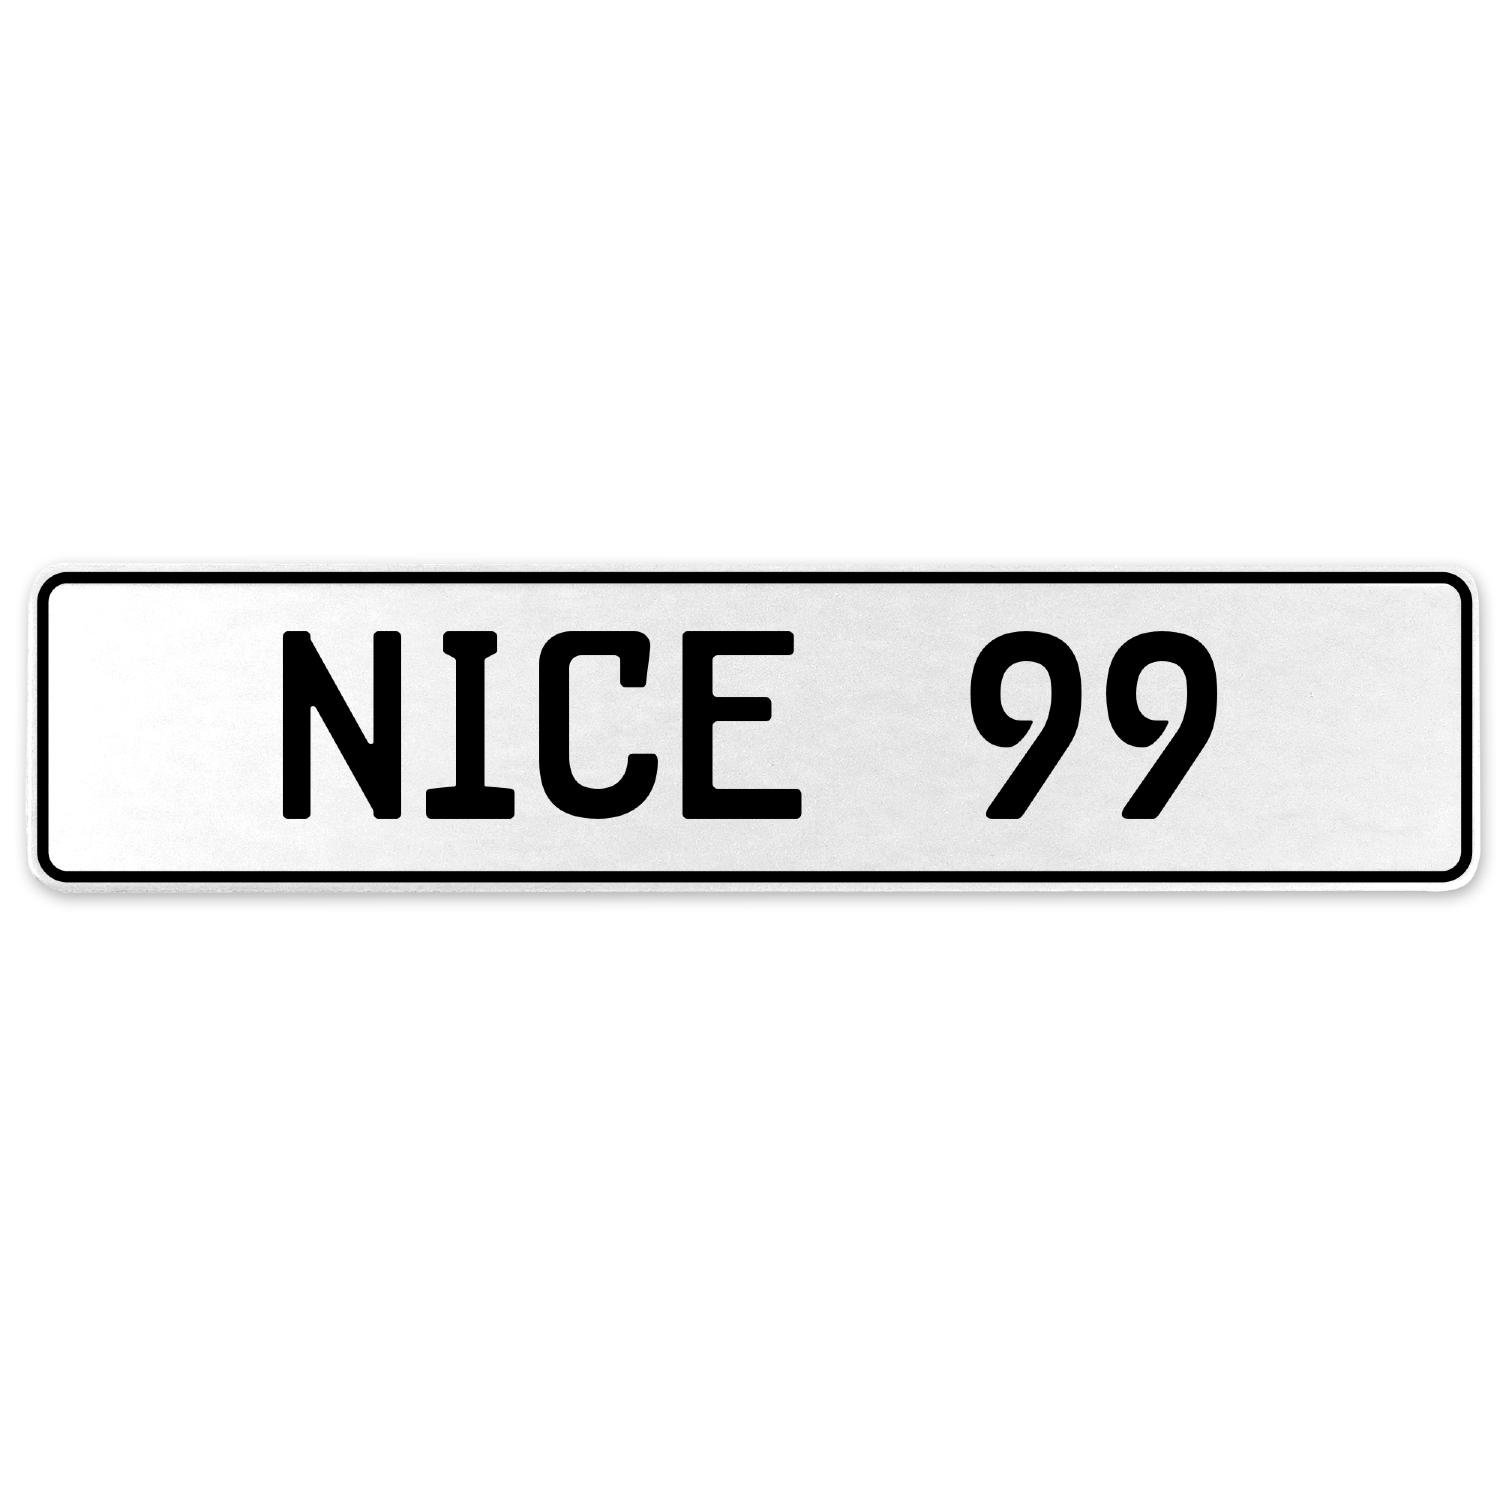 Vintage Parts 555290 Nice 99 White Stamped Aluminum European License Plate